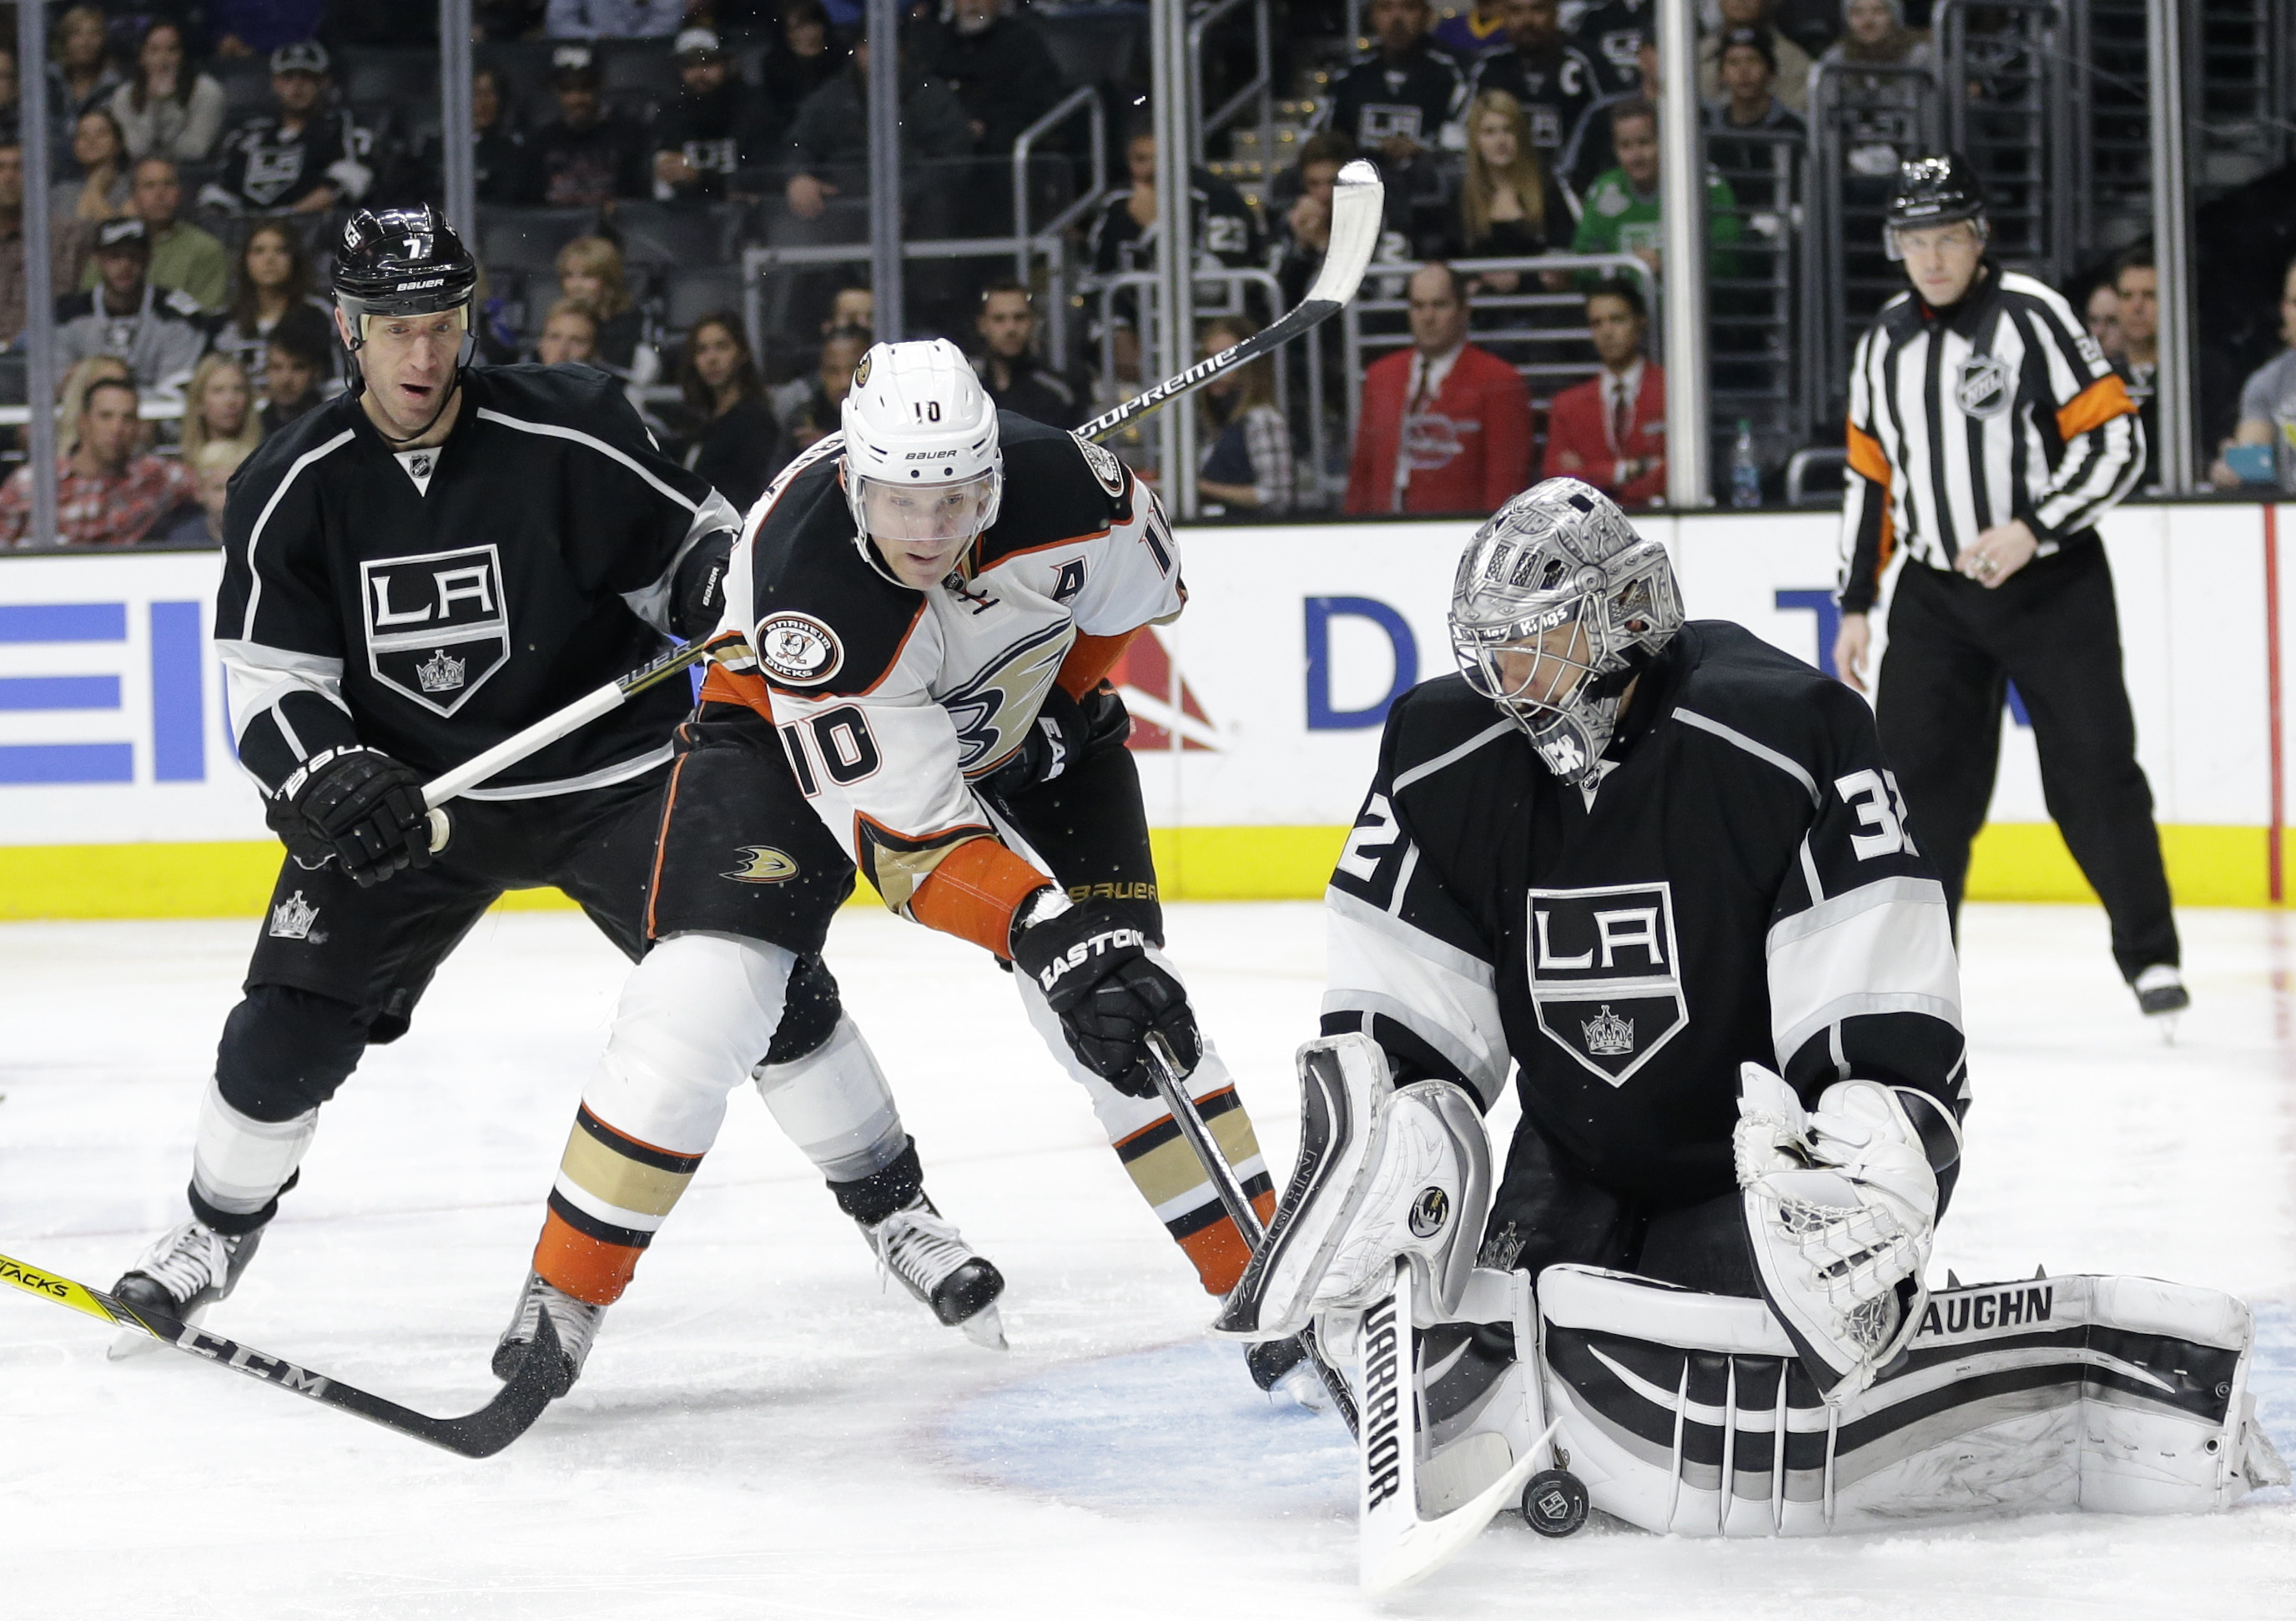 Los Angeles Kings goalie Jonathan Quick, front right, stops a shot by Anaheim Ducks' Corey Perry as Kings' Rob Scuderi, left, watches during the third period of an NHL hockey game, Saturday, March 5, 2016, in Los Angeles. (AP Photo/Jae C. Hong)